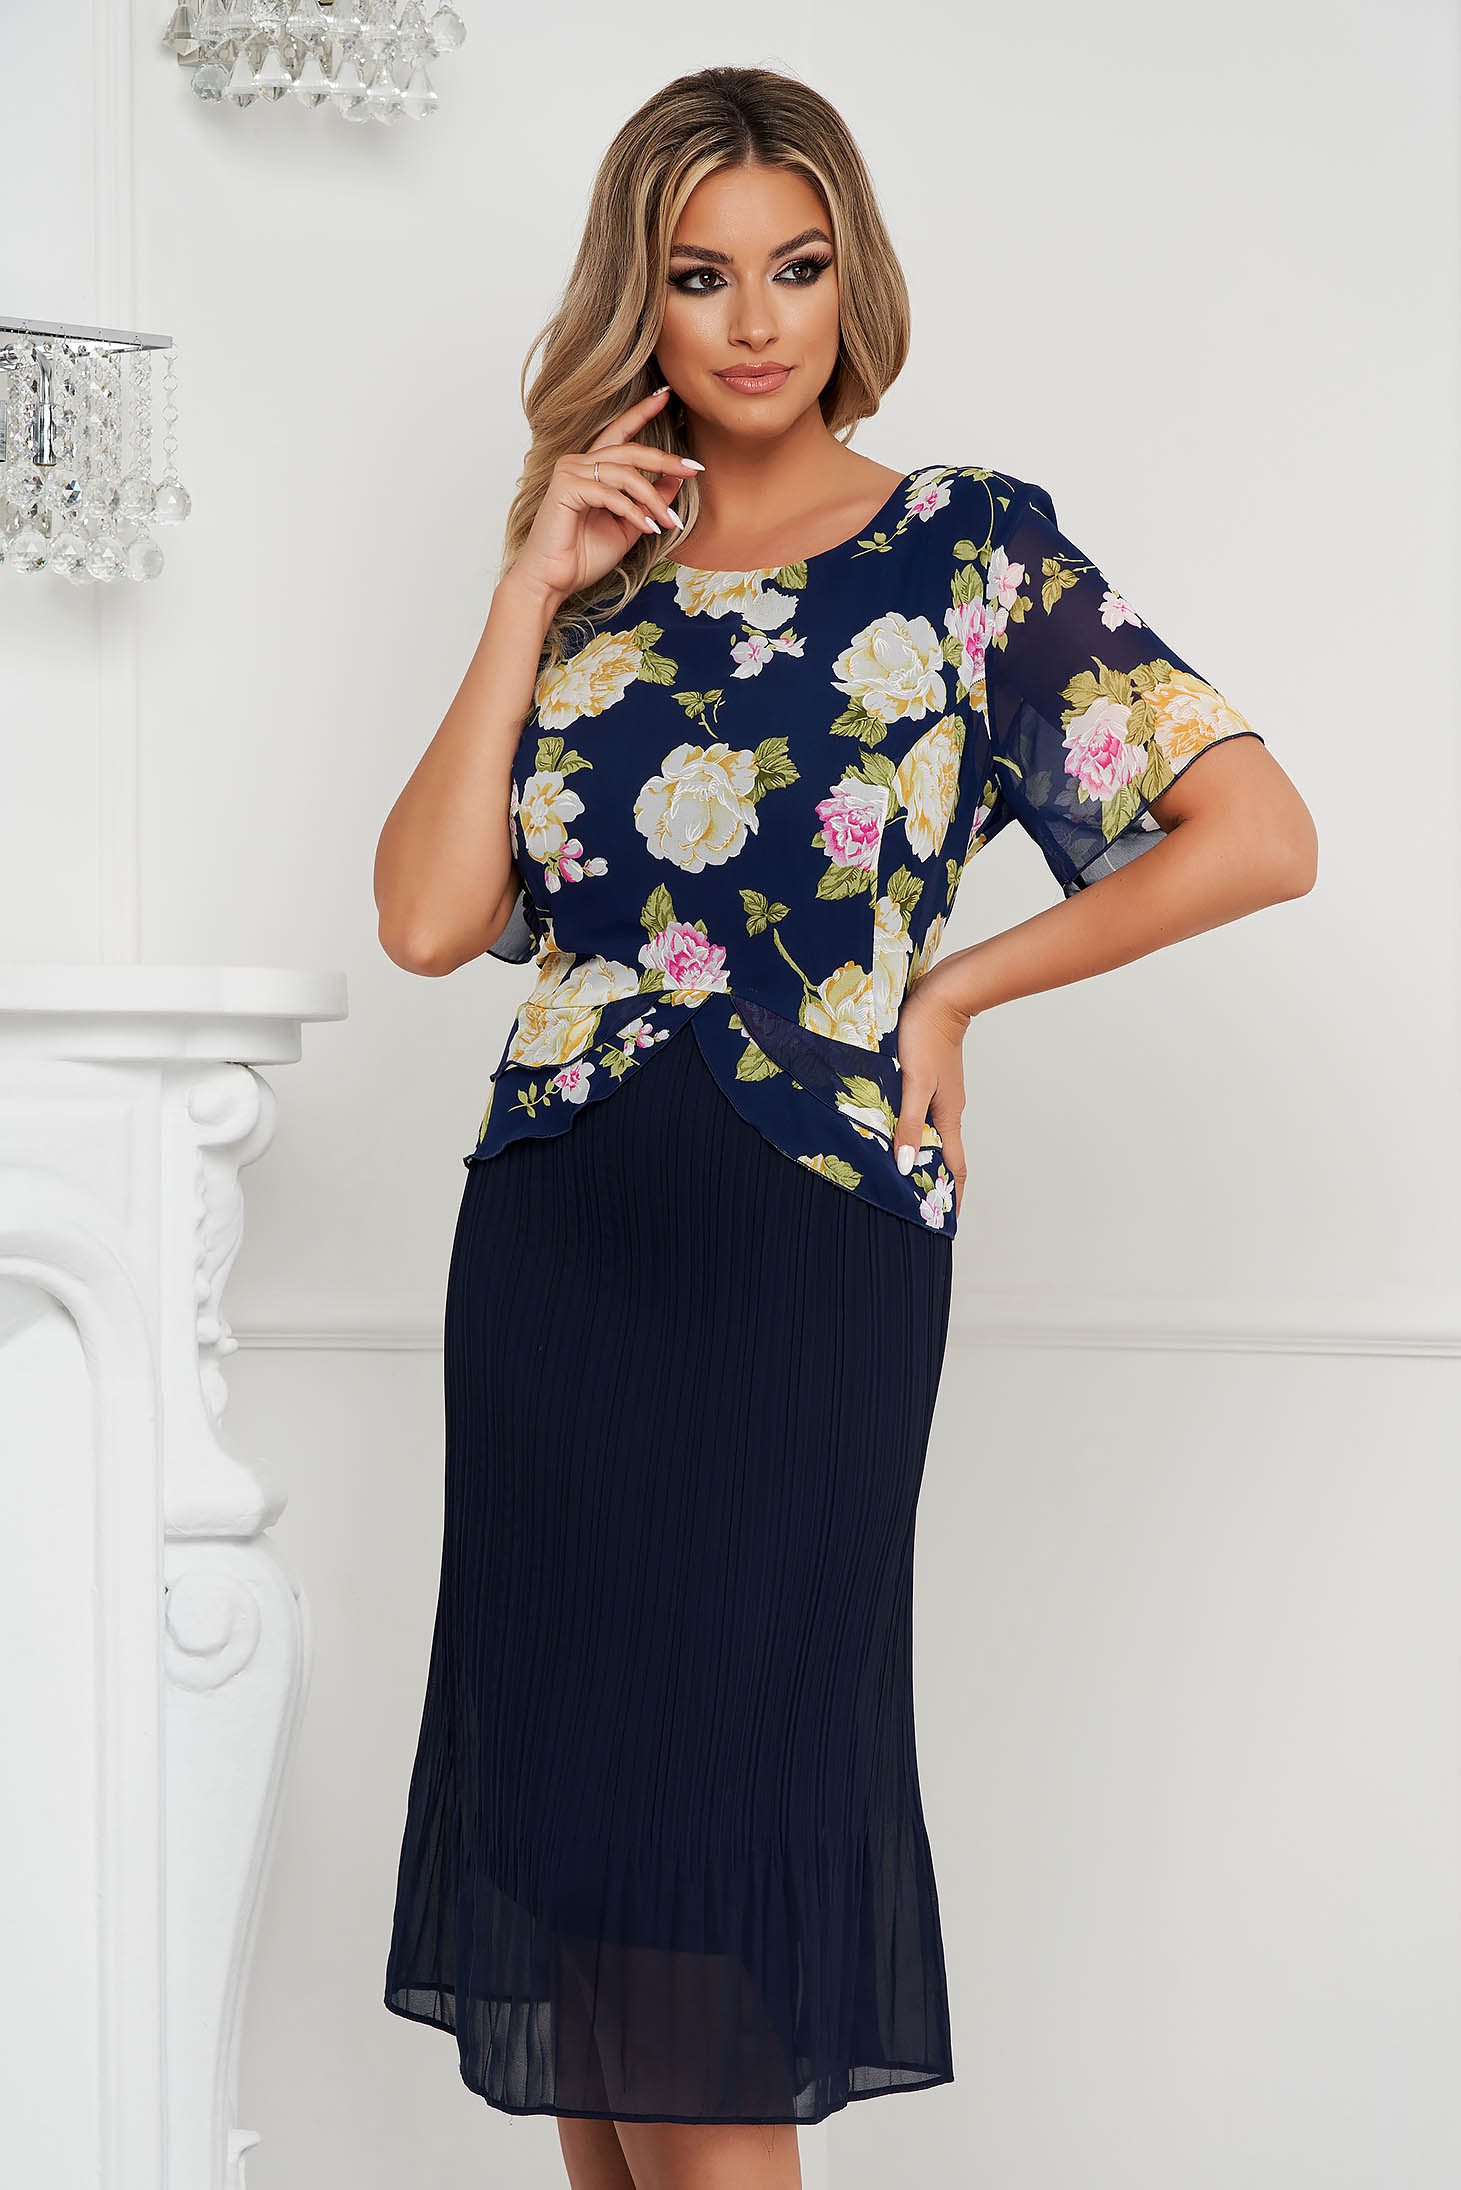 Dress from veil fabric straight midi folded up with frilled waist